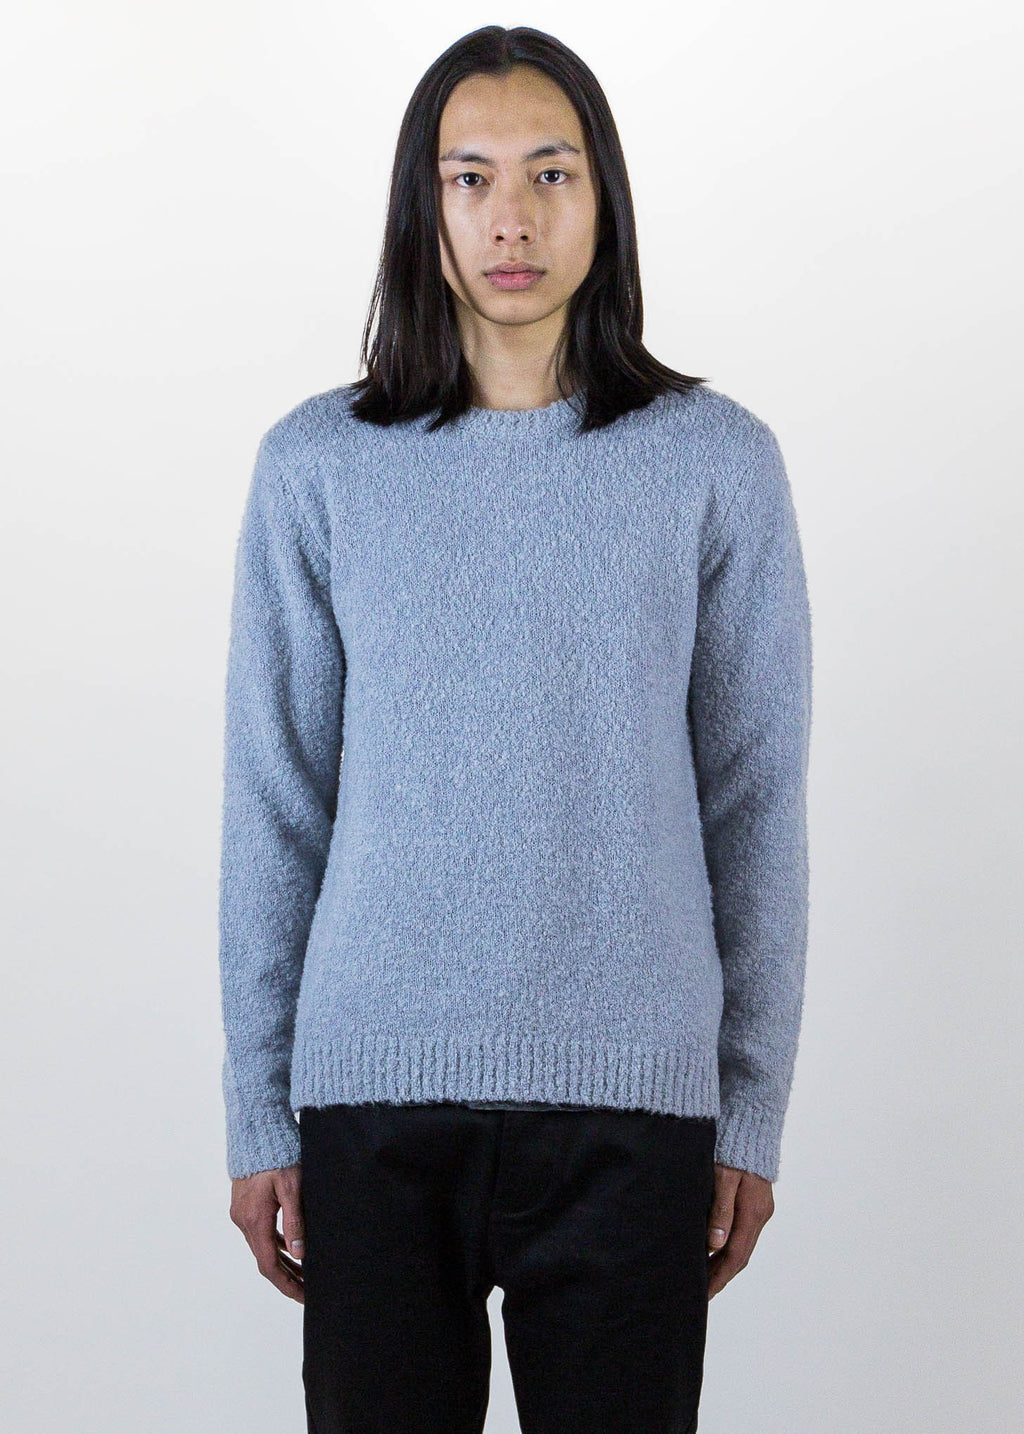 Harmony, Grey Willie Knitted Sweater, 017 Shop